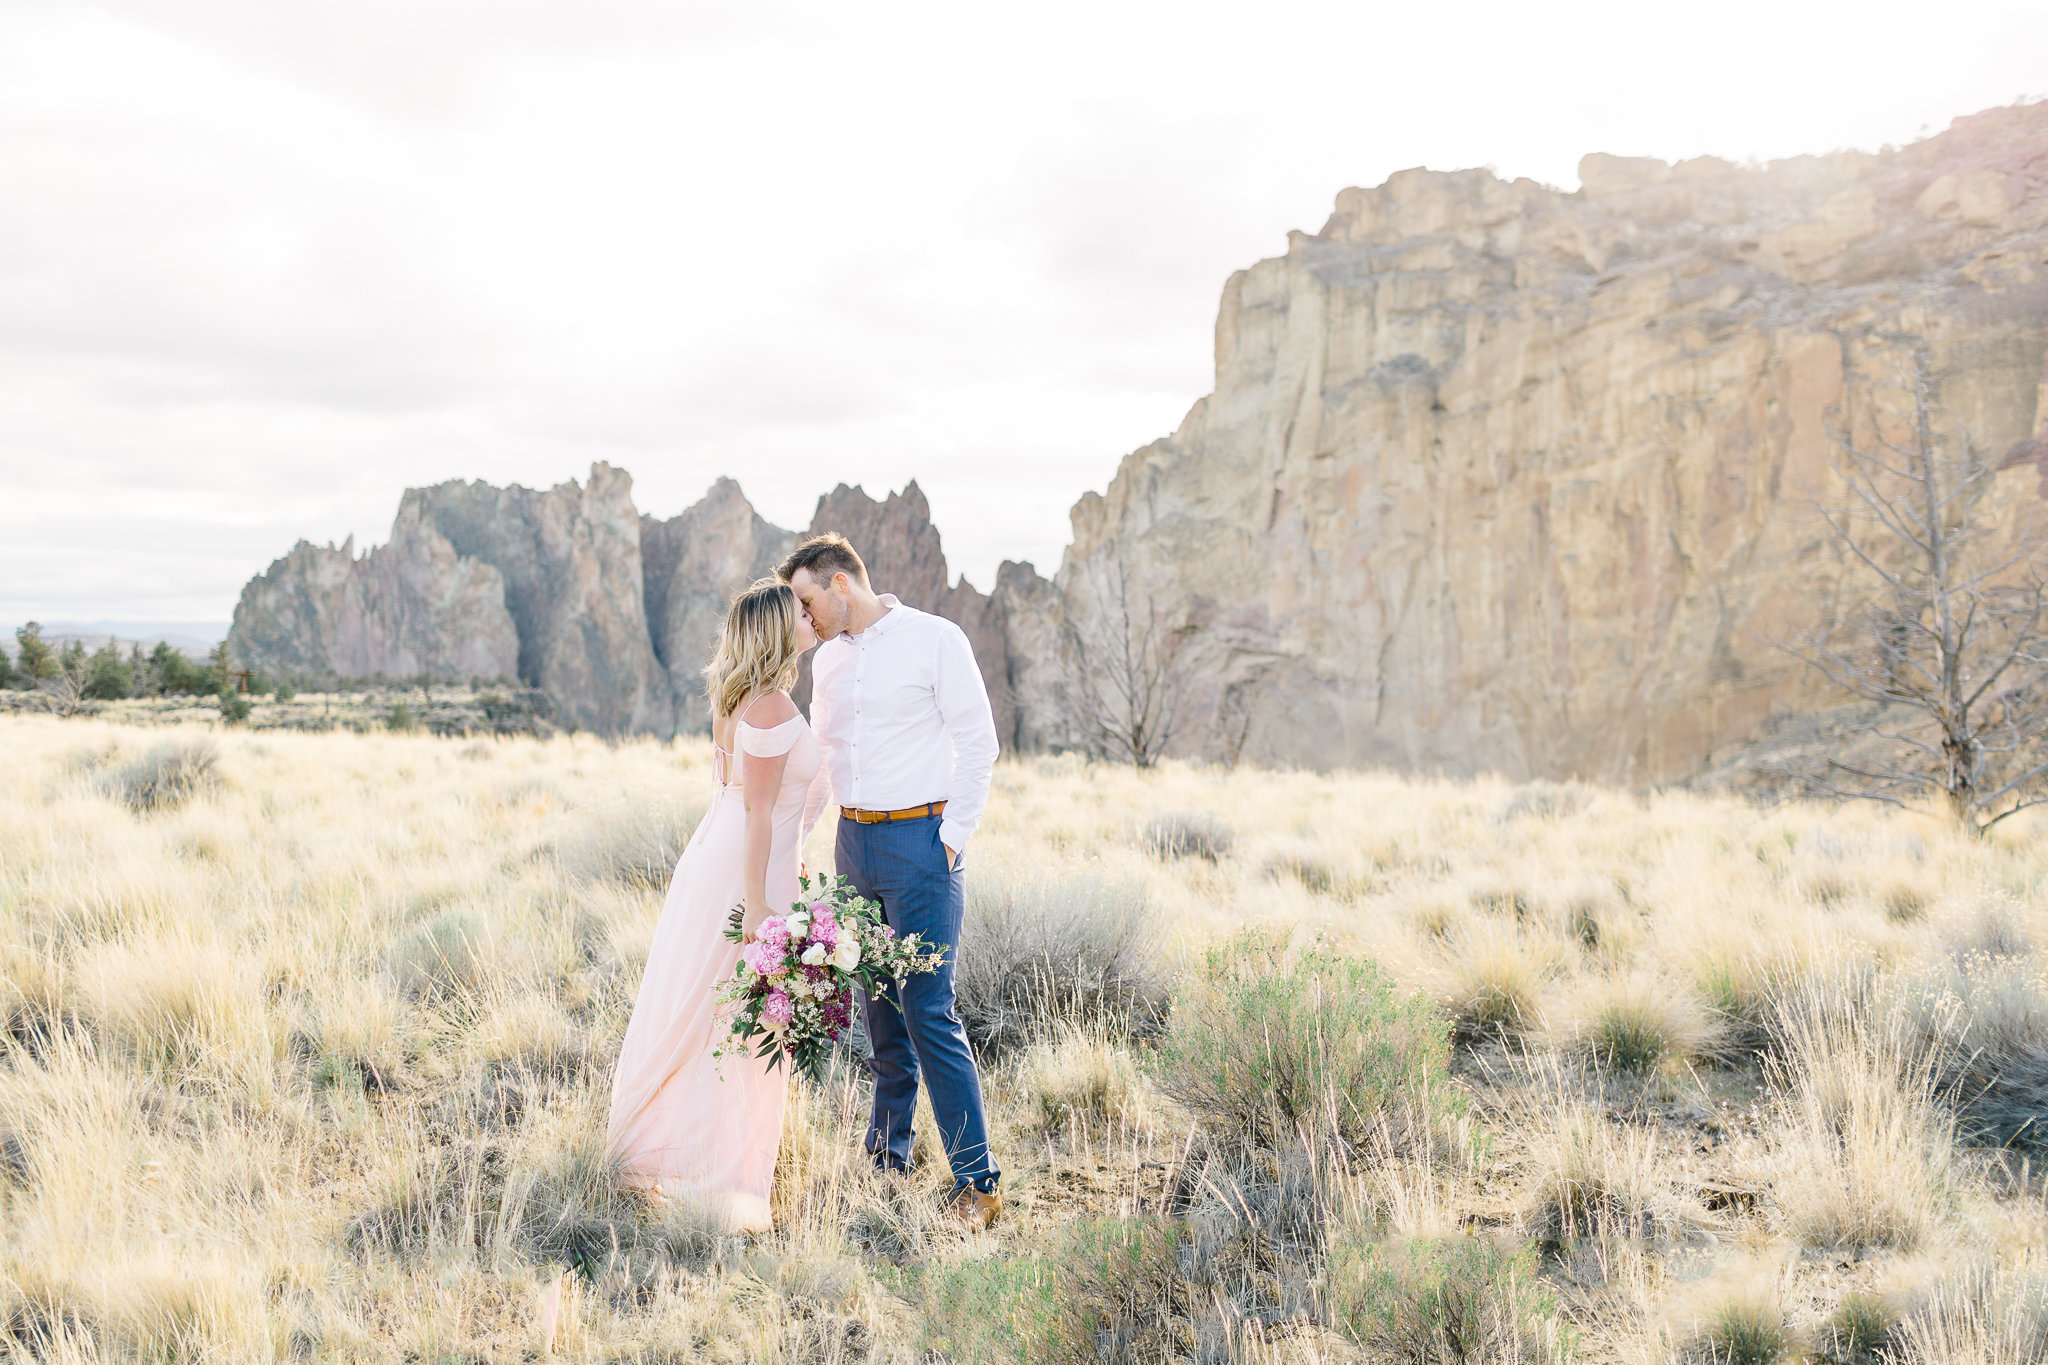 photographe-seance-anniversaire-de-mariage-smith-rock-state-park-oregon-lisa-renault-photographie-wedding-anniversary-session-photographer-35